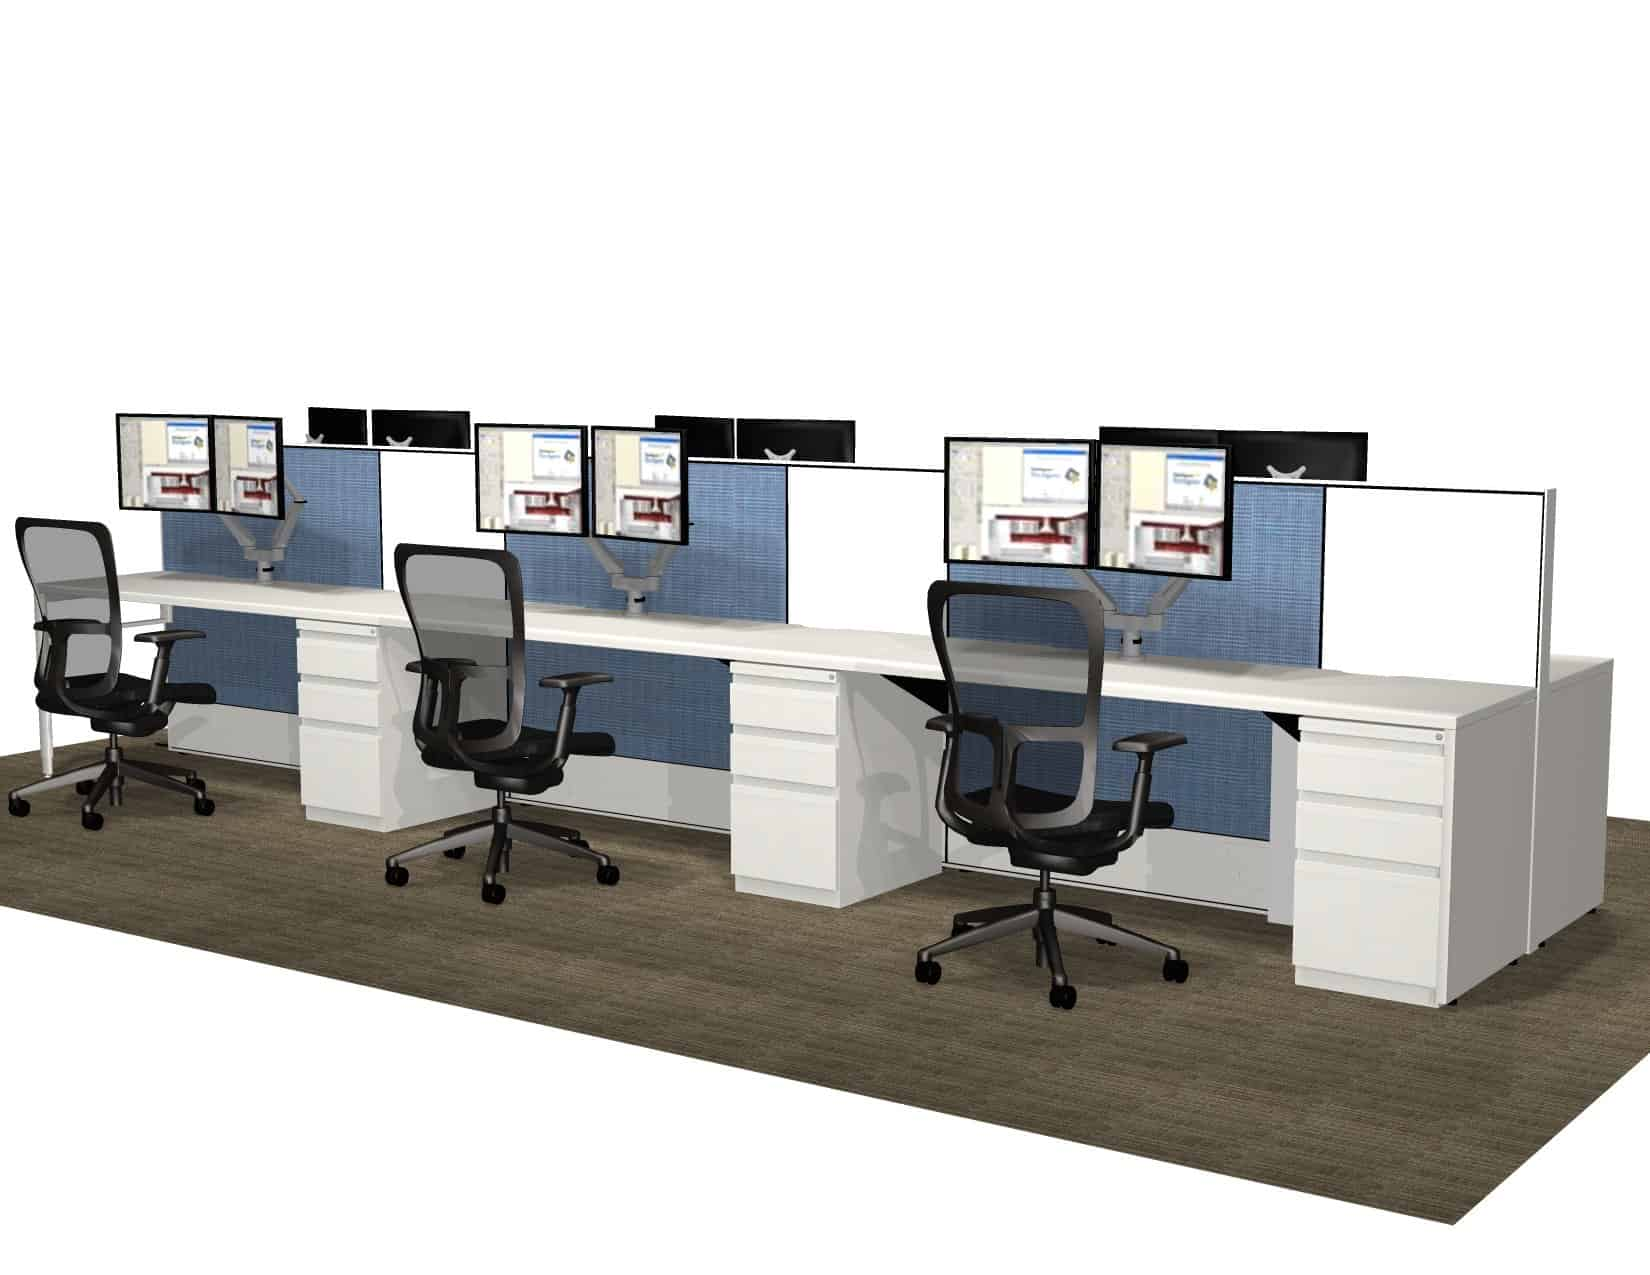 Charmant New And Used Office Furniture, Including Conference Tables, Executive  Desks, Office Chairs, Office Cubicles U0026 Re Manufactured Workstations In Fort  ...